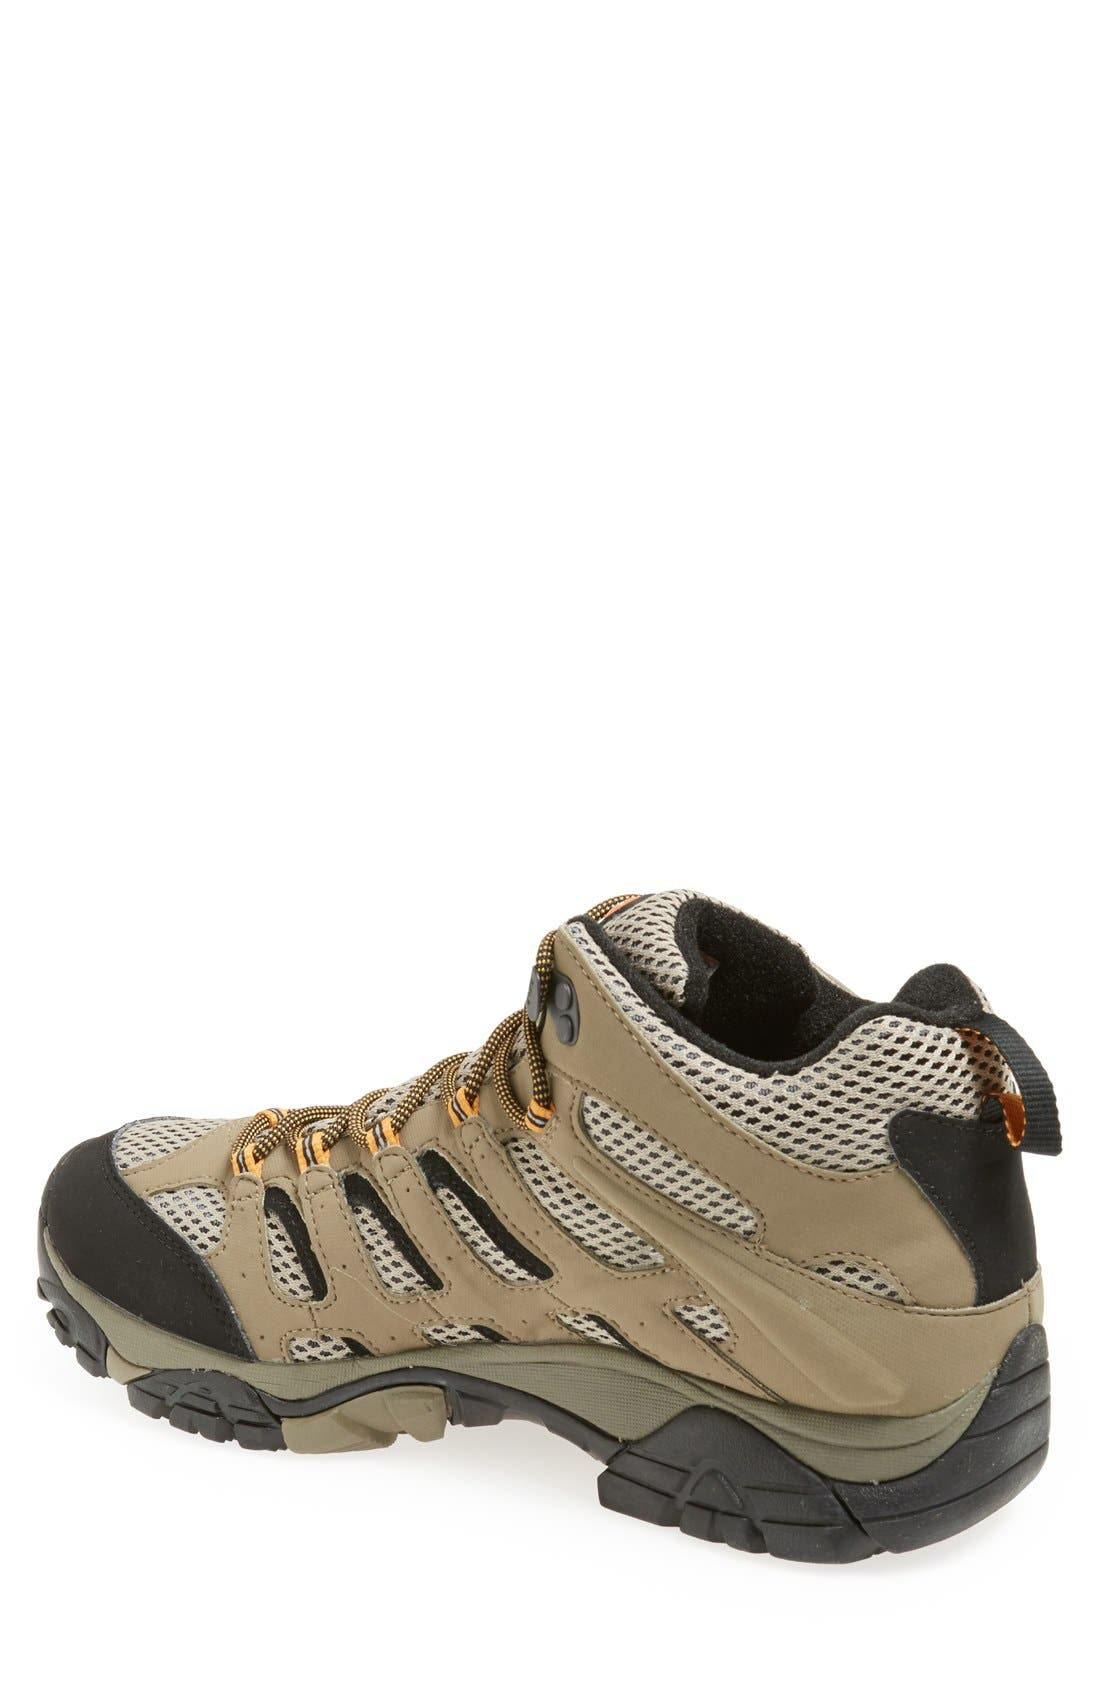 Alternate Image 2  - Merrell 'Moab Mid Gore-Tex® XCR' Hiking Boot (Men) (Online Only)